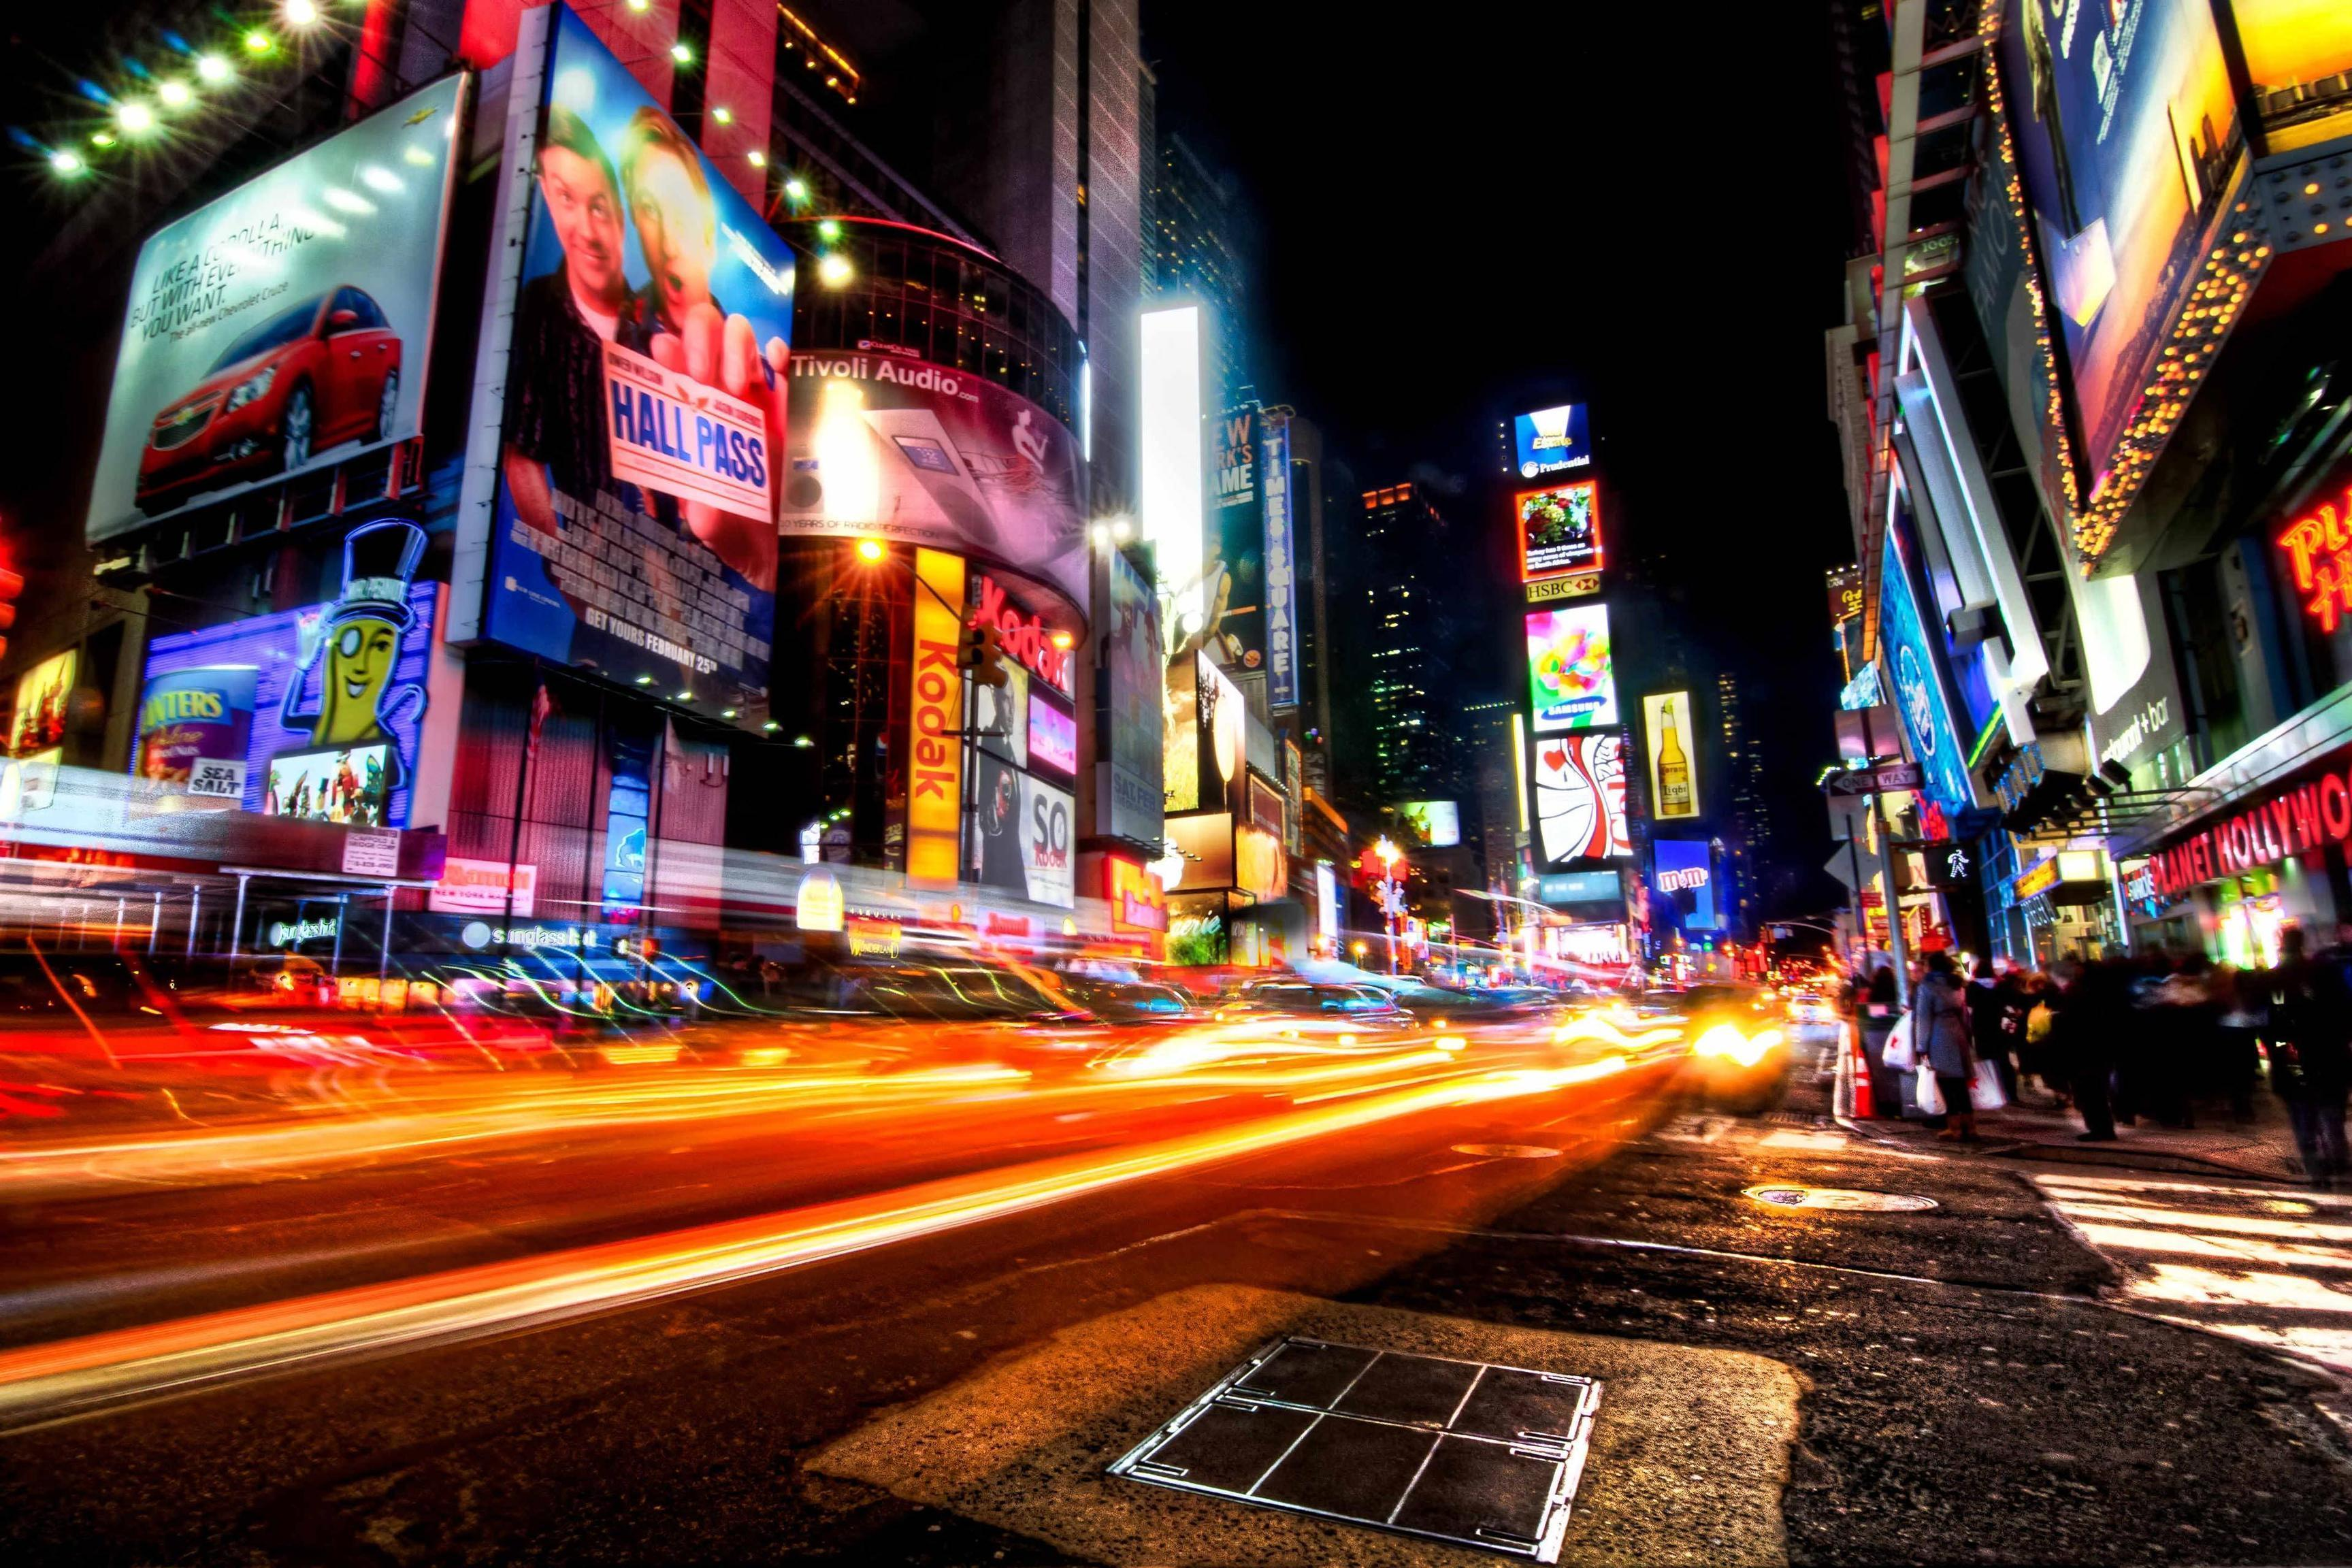 Times Square Wallpaper Archives - Wallpapers & Backgrounds Images ...